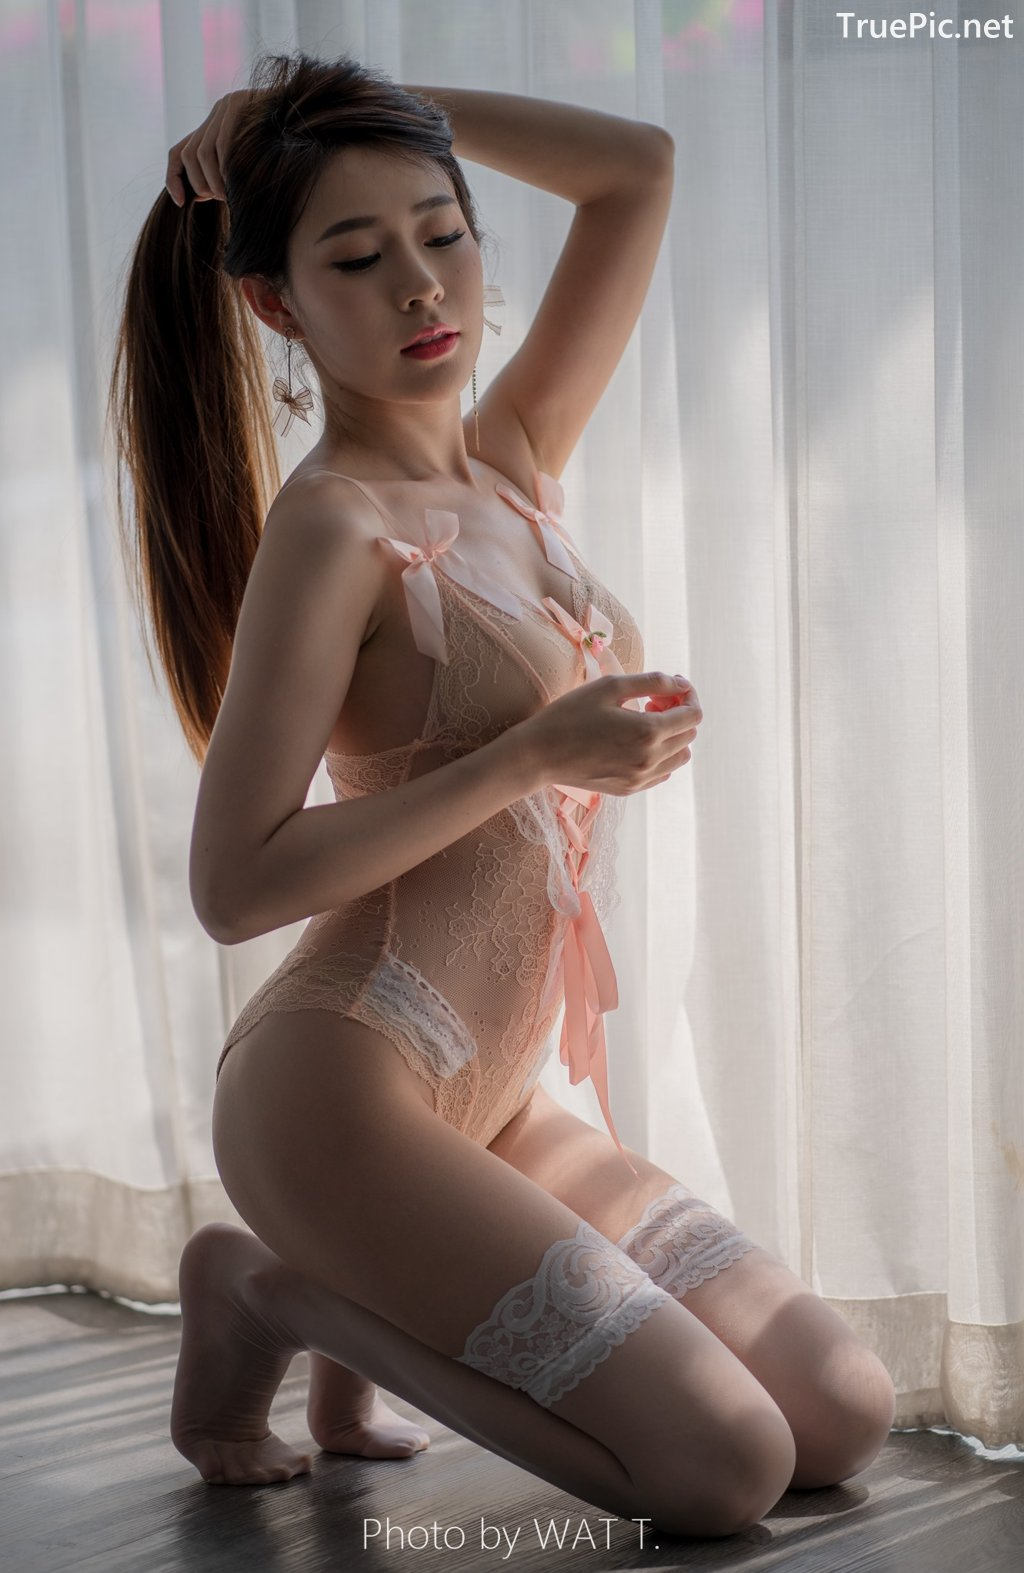 Image Thailand Model - Thipsuda Jitaree - Pink Sky Lingerie - TruePic.net - Picture-1